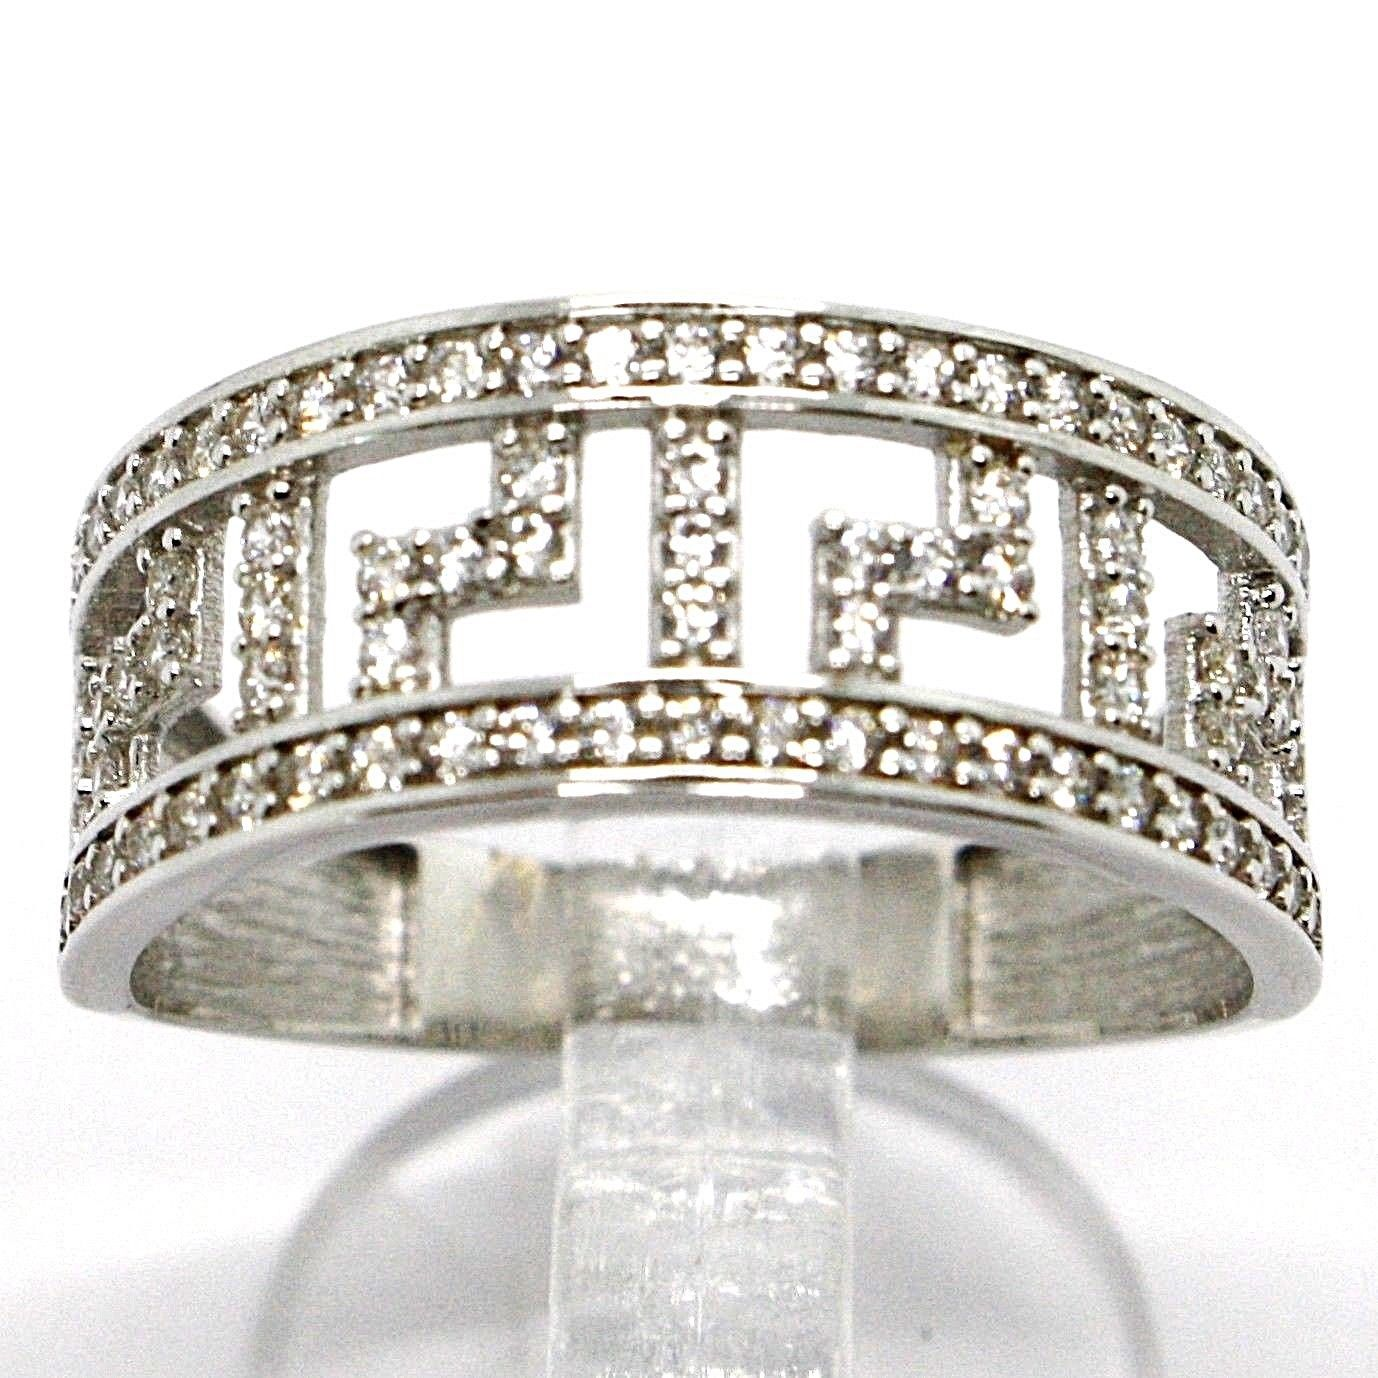 SOLID 18K WHITE GOLD BAND RING WITH ZIRCONIA, BINARY, GREEK, MADE IN ITALY